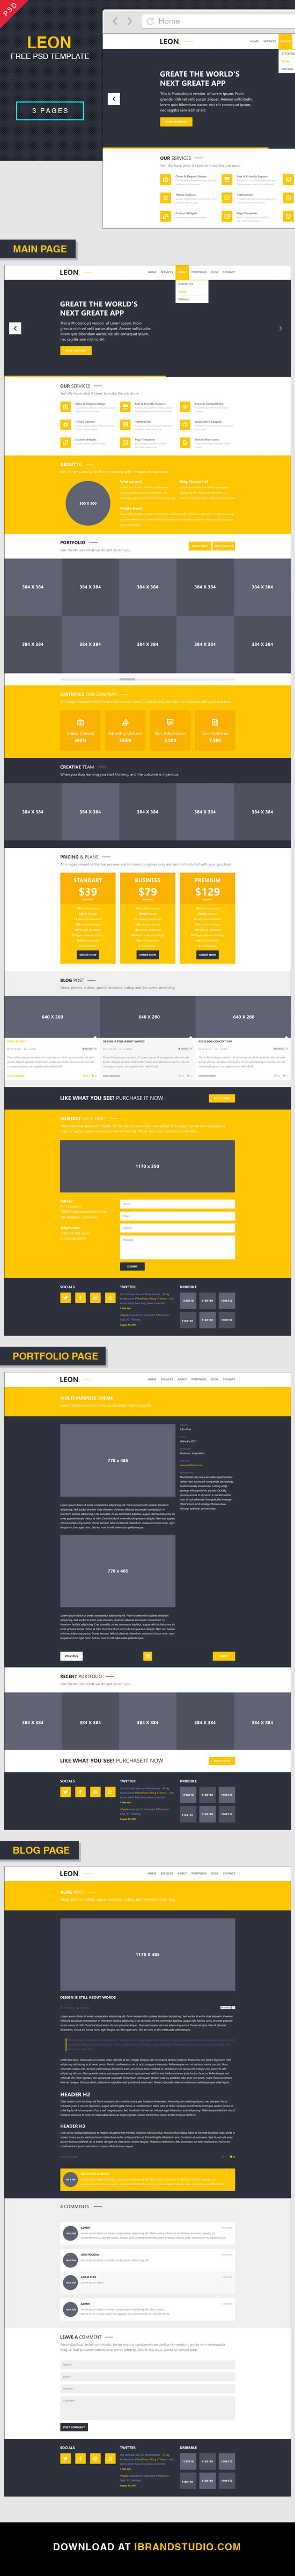 Free Website Landing Page Template